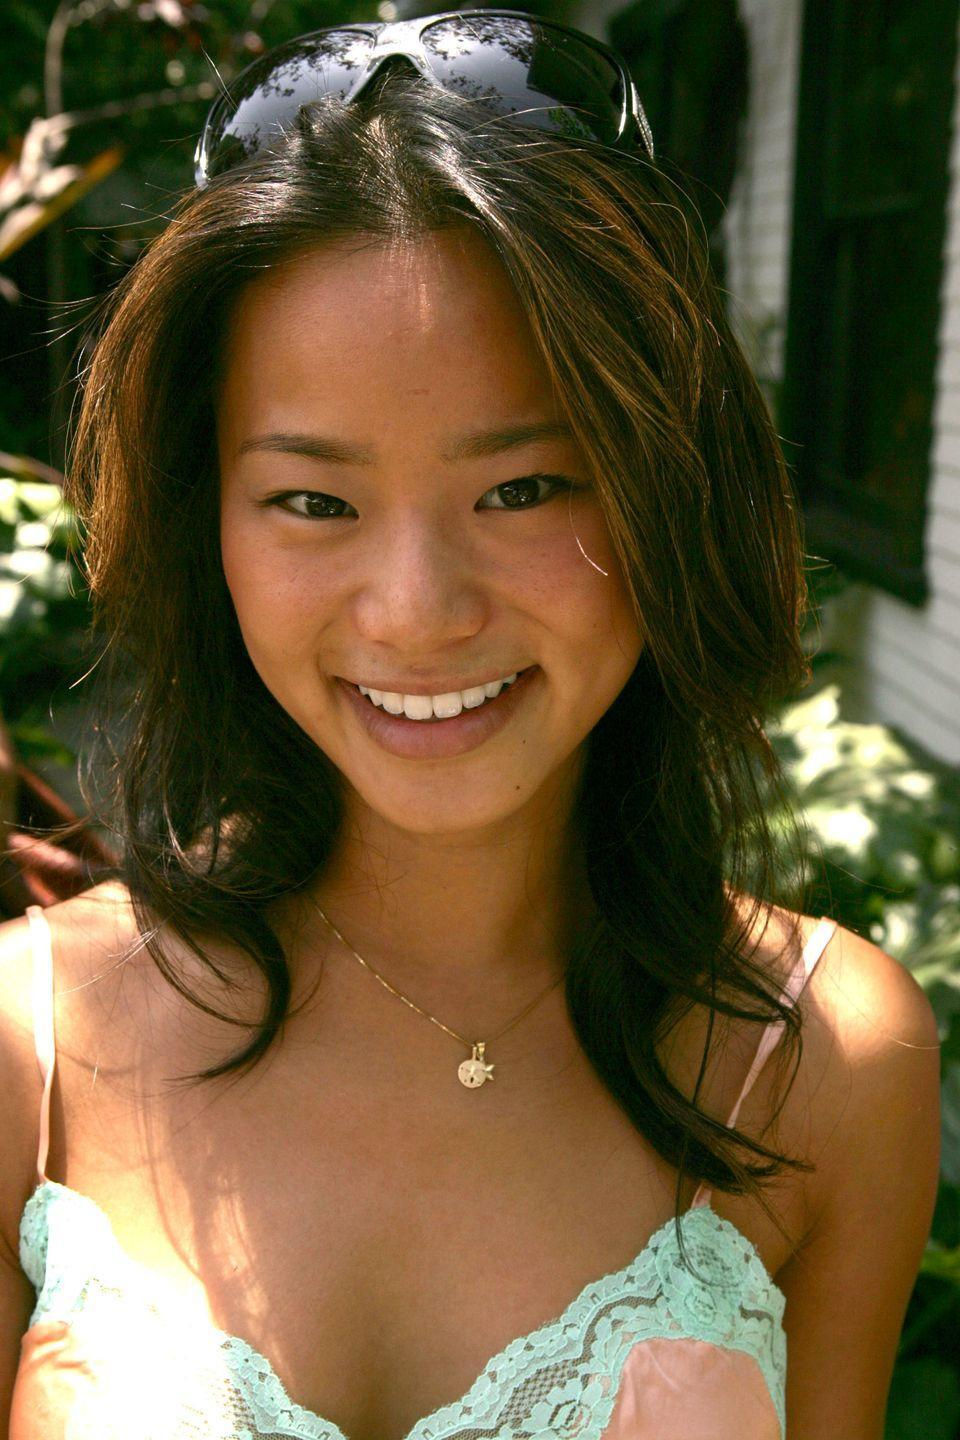 "<p>Jamie Chung was only 20 years old when she was on <em>The Real World: San Diego</em> in 2004. Afterward, she joined the cast of <em>Real World/Road Rules Challenge: The Inferno II </em>in 2005. ""It's a great experience that I would never trade for the world,"" Chung told the <a href=""https://www.youtube.com/watch?v=kKENGQIbEZ4"" rel=""nofollow noopener"" target=""_blank"" data-ylk=""slk:BUILD Series"" class=""link rapid-noclick-resp"">BUILD Series</a> about her time on reality TV, while lamenting about the lack of privacy.</p>"